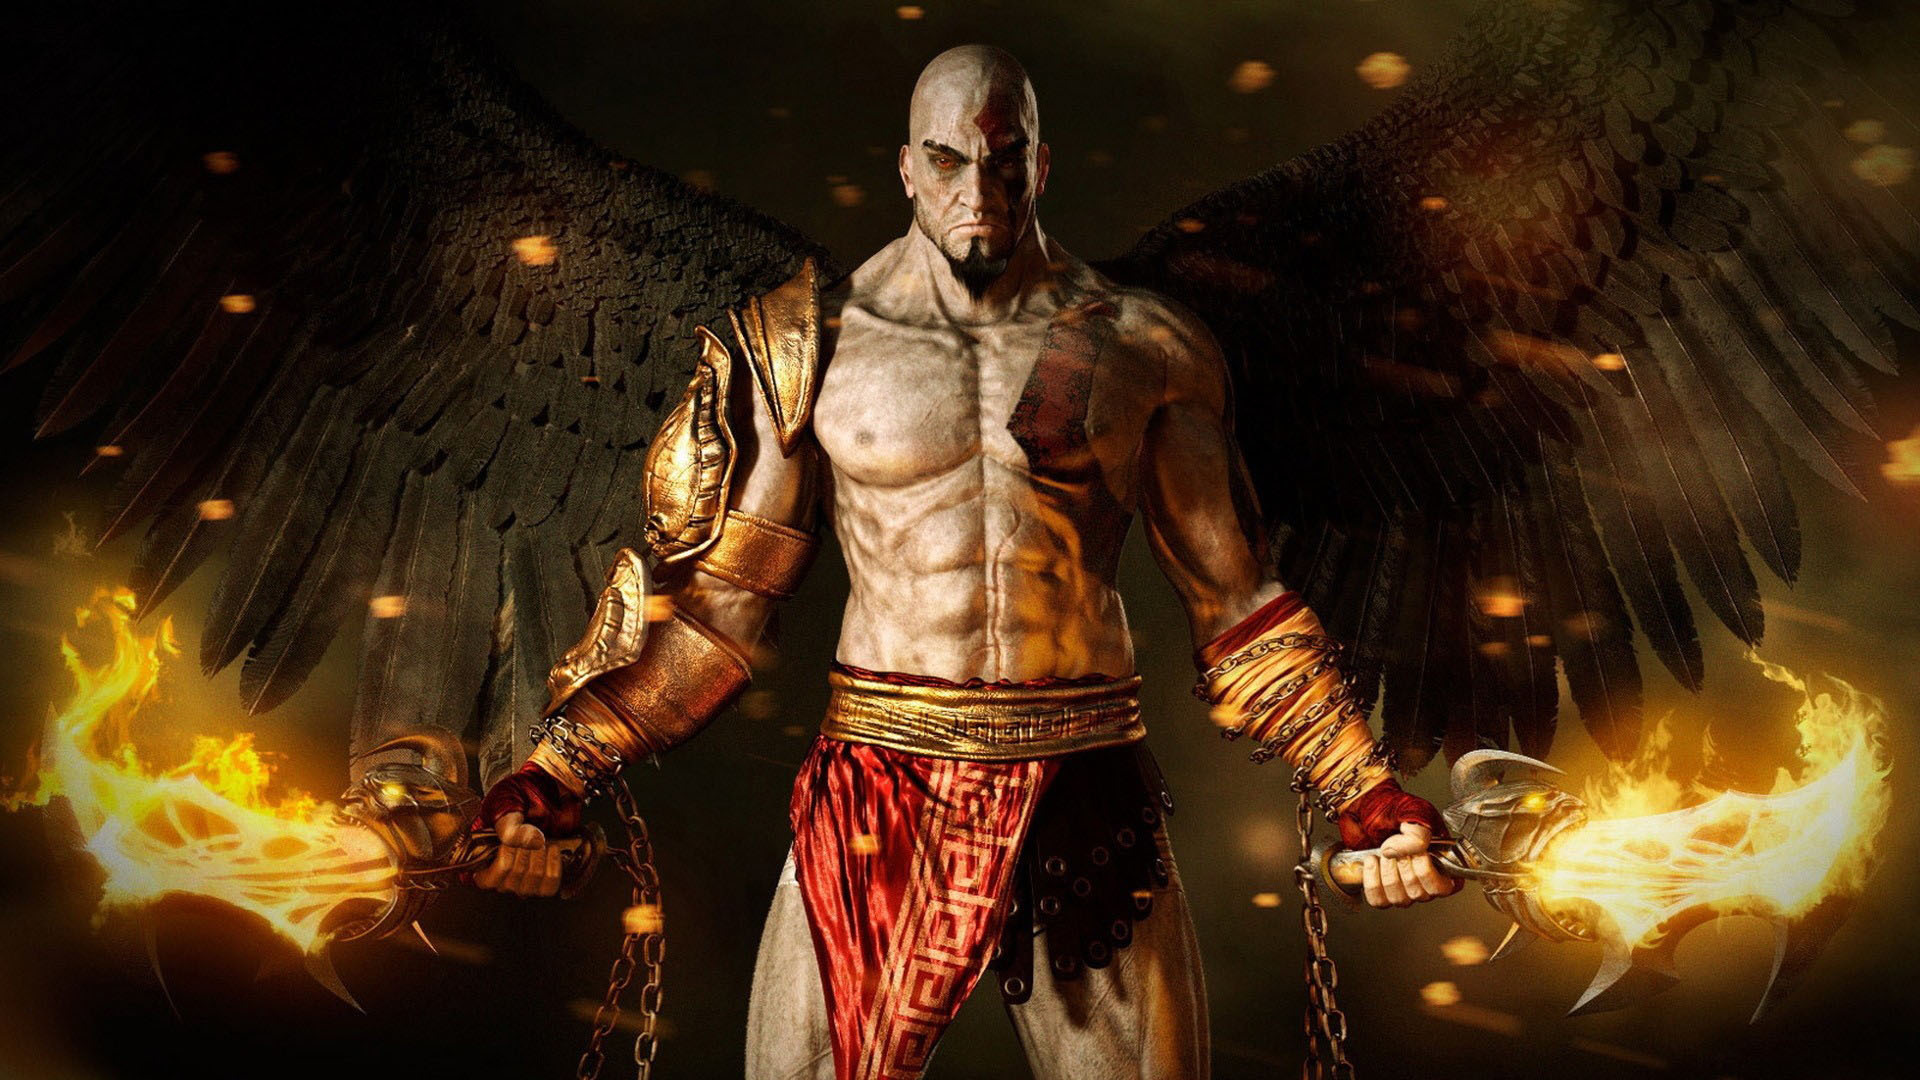 16599 download wallpaper Games, God Of War, Men, Angels screensavers and pictures for free